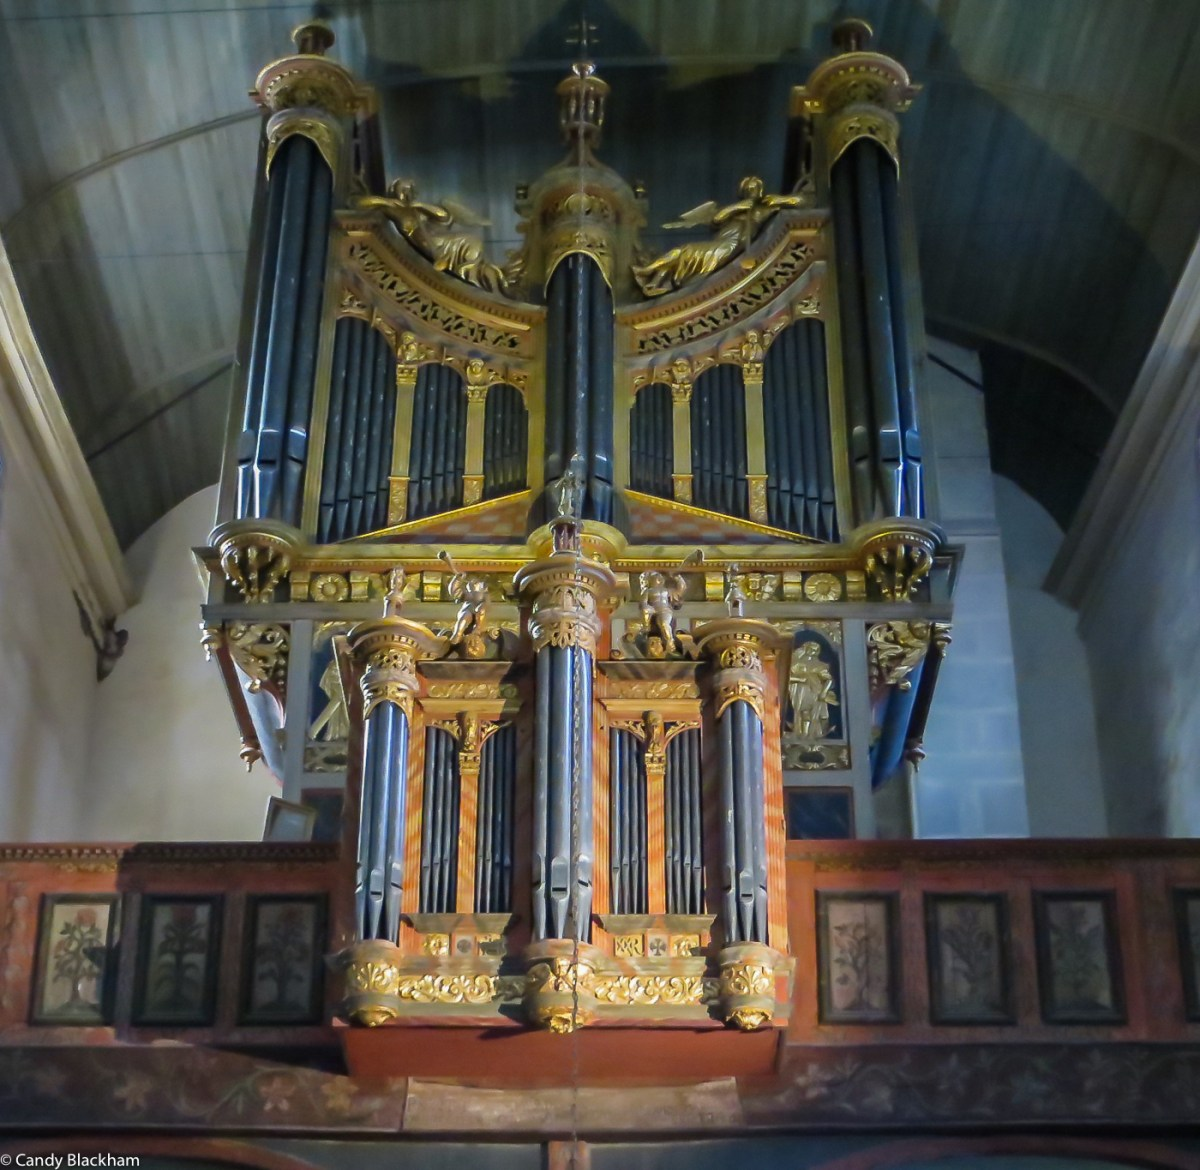 The organ, St Thegonnec